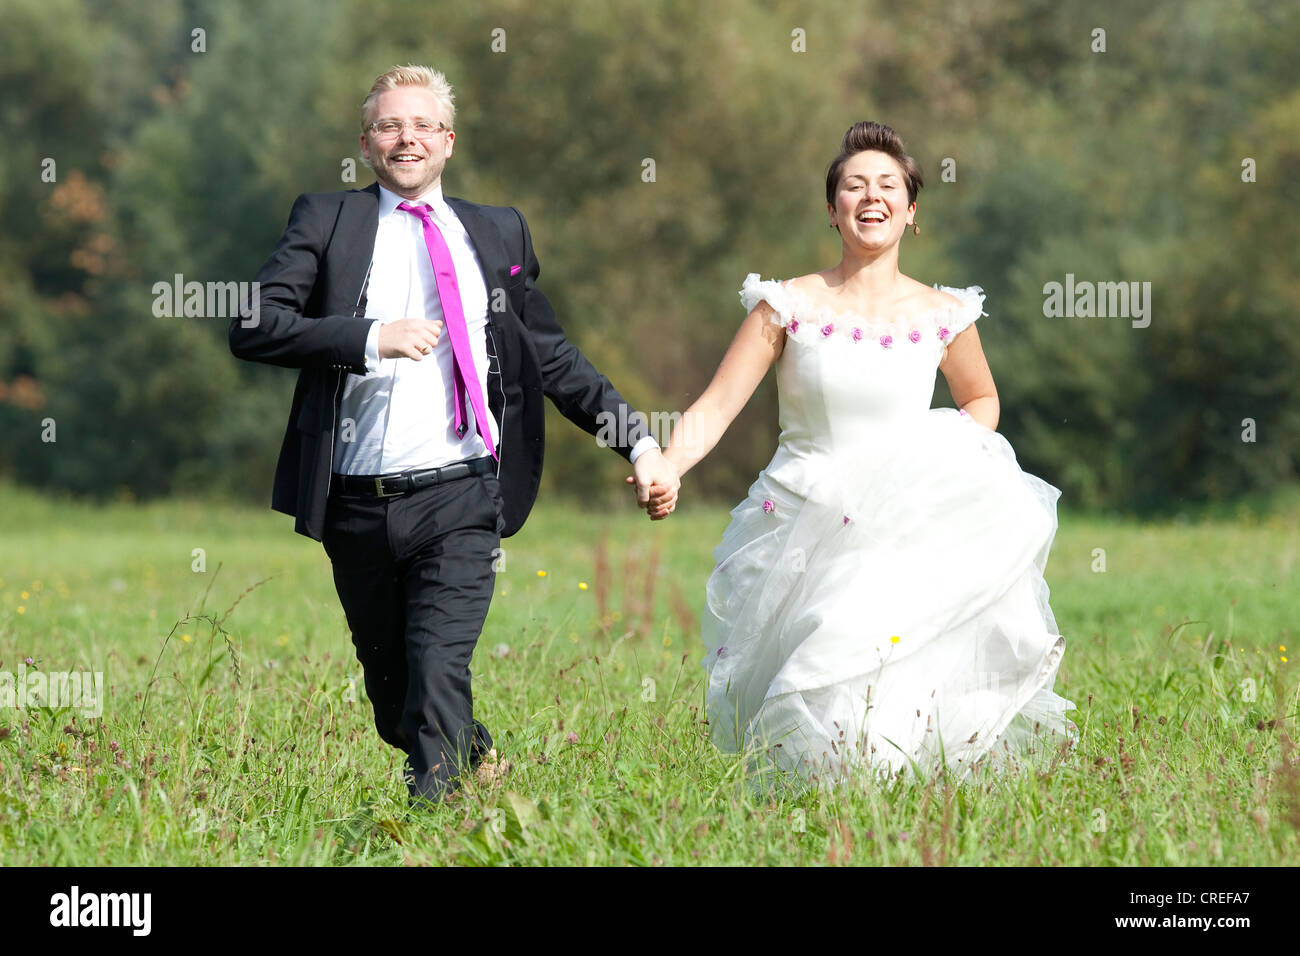 Bride and groom running across a meadow, Regensburg, Bavaria, Germany, Europe - Stock Image